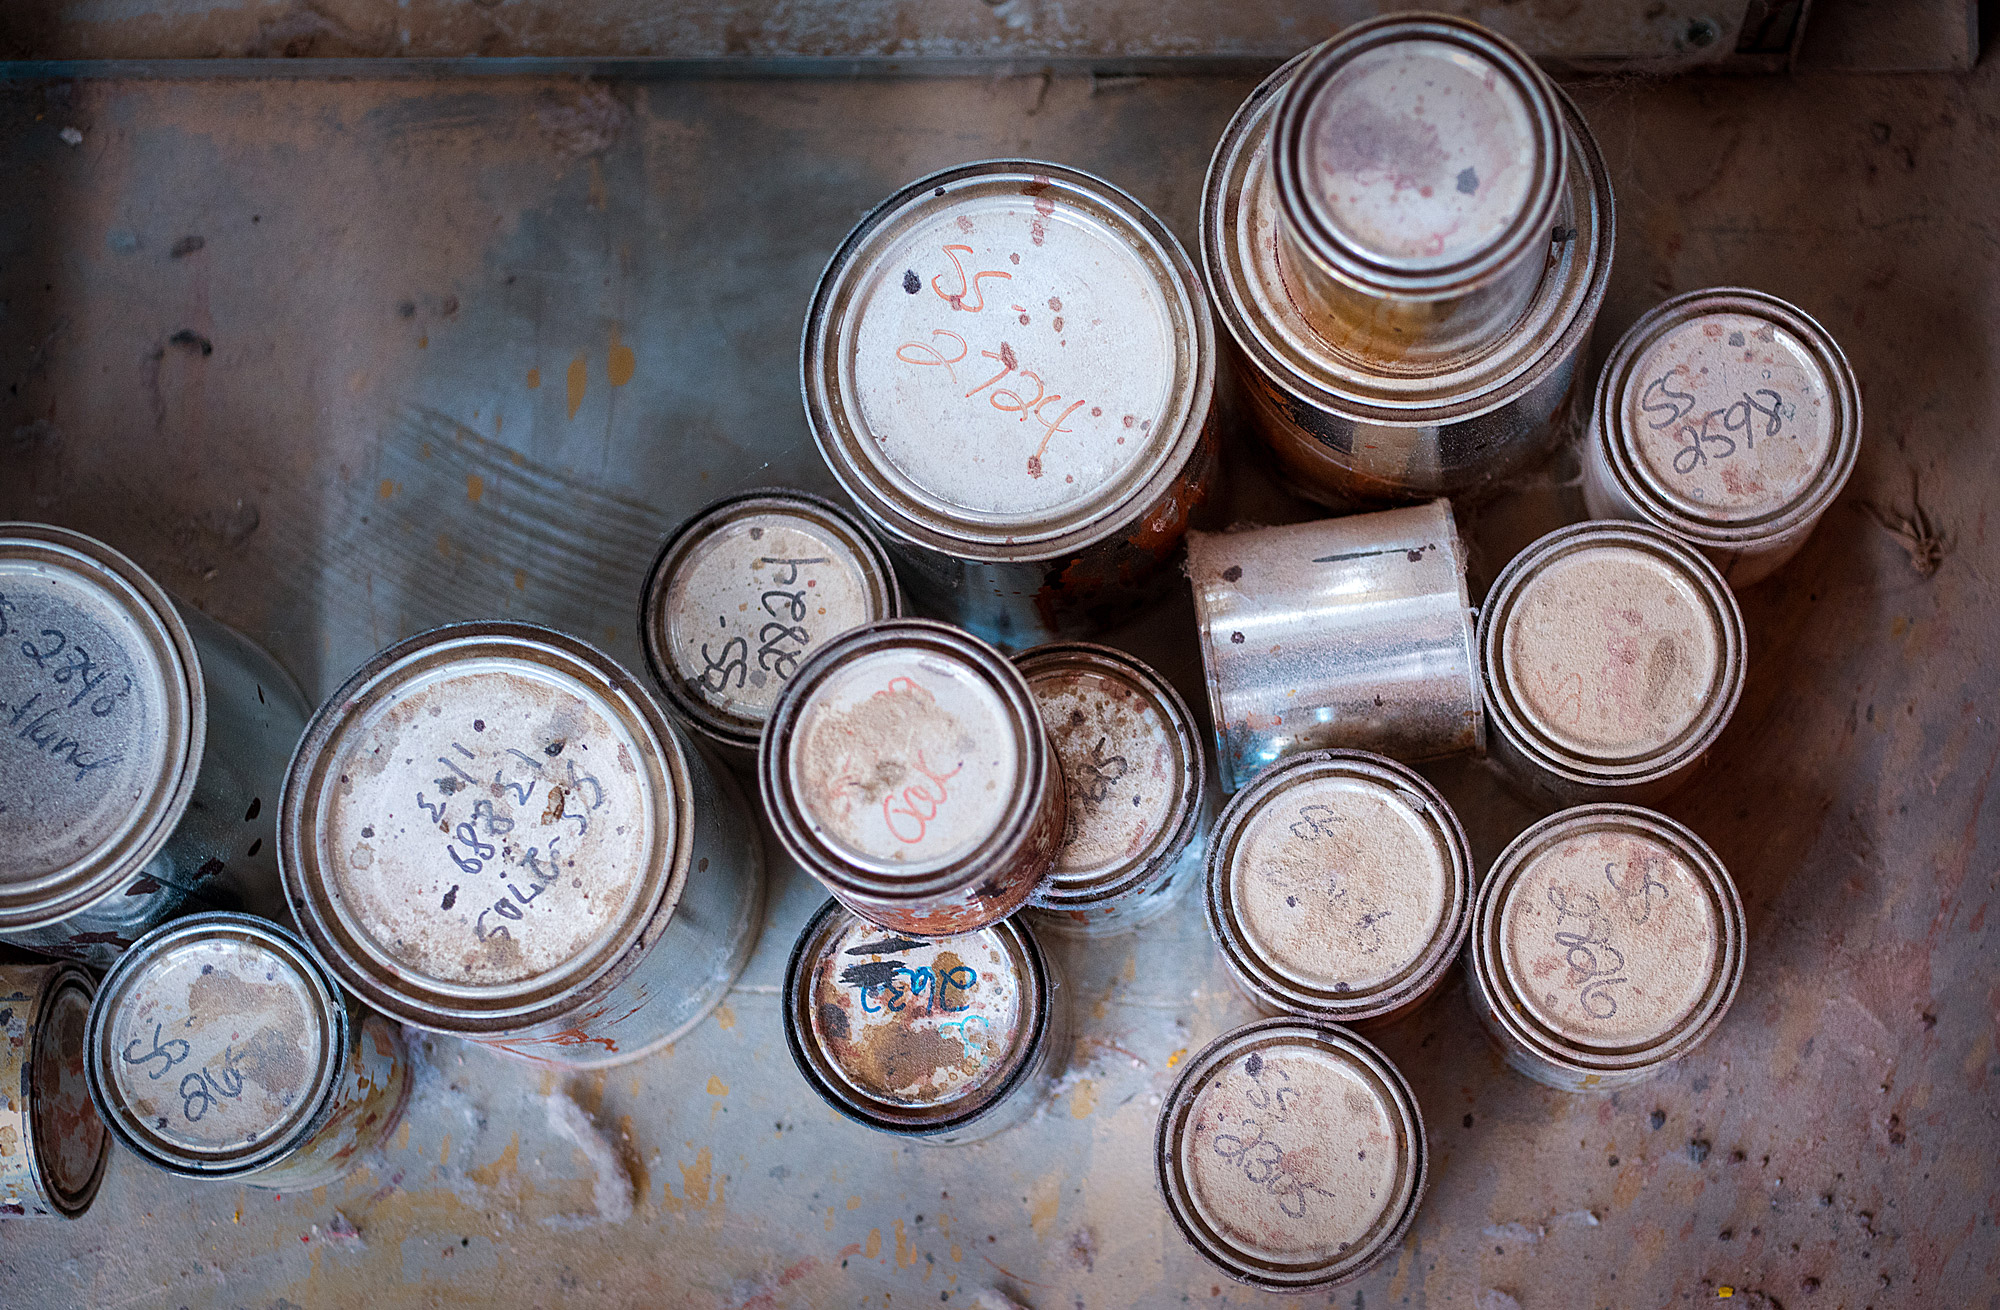 Paint-cans-from-top-01.jpg